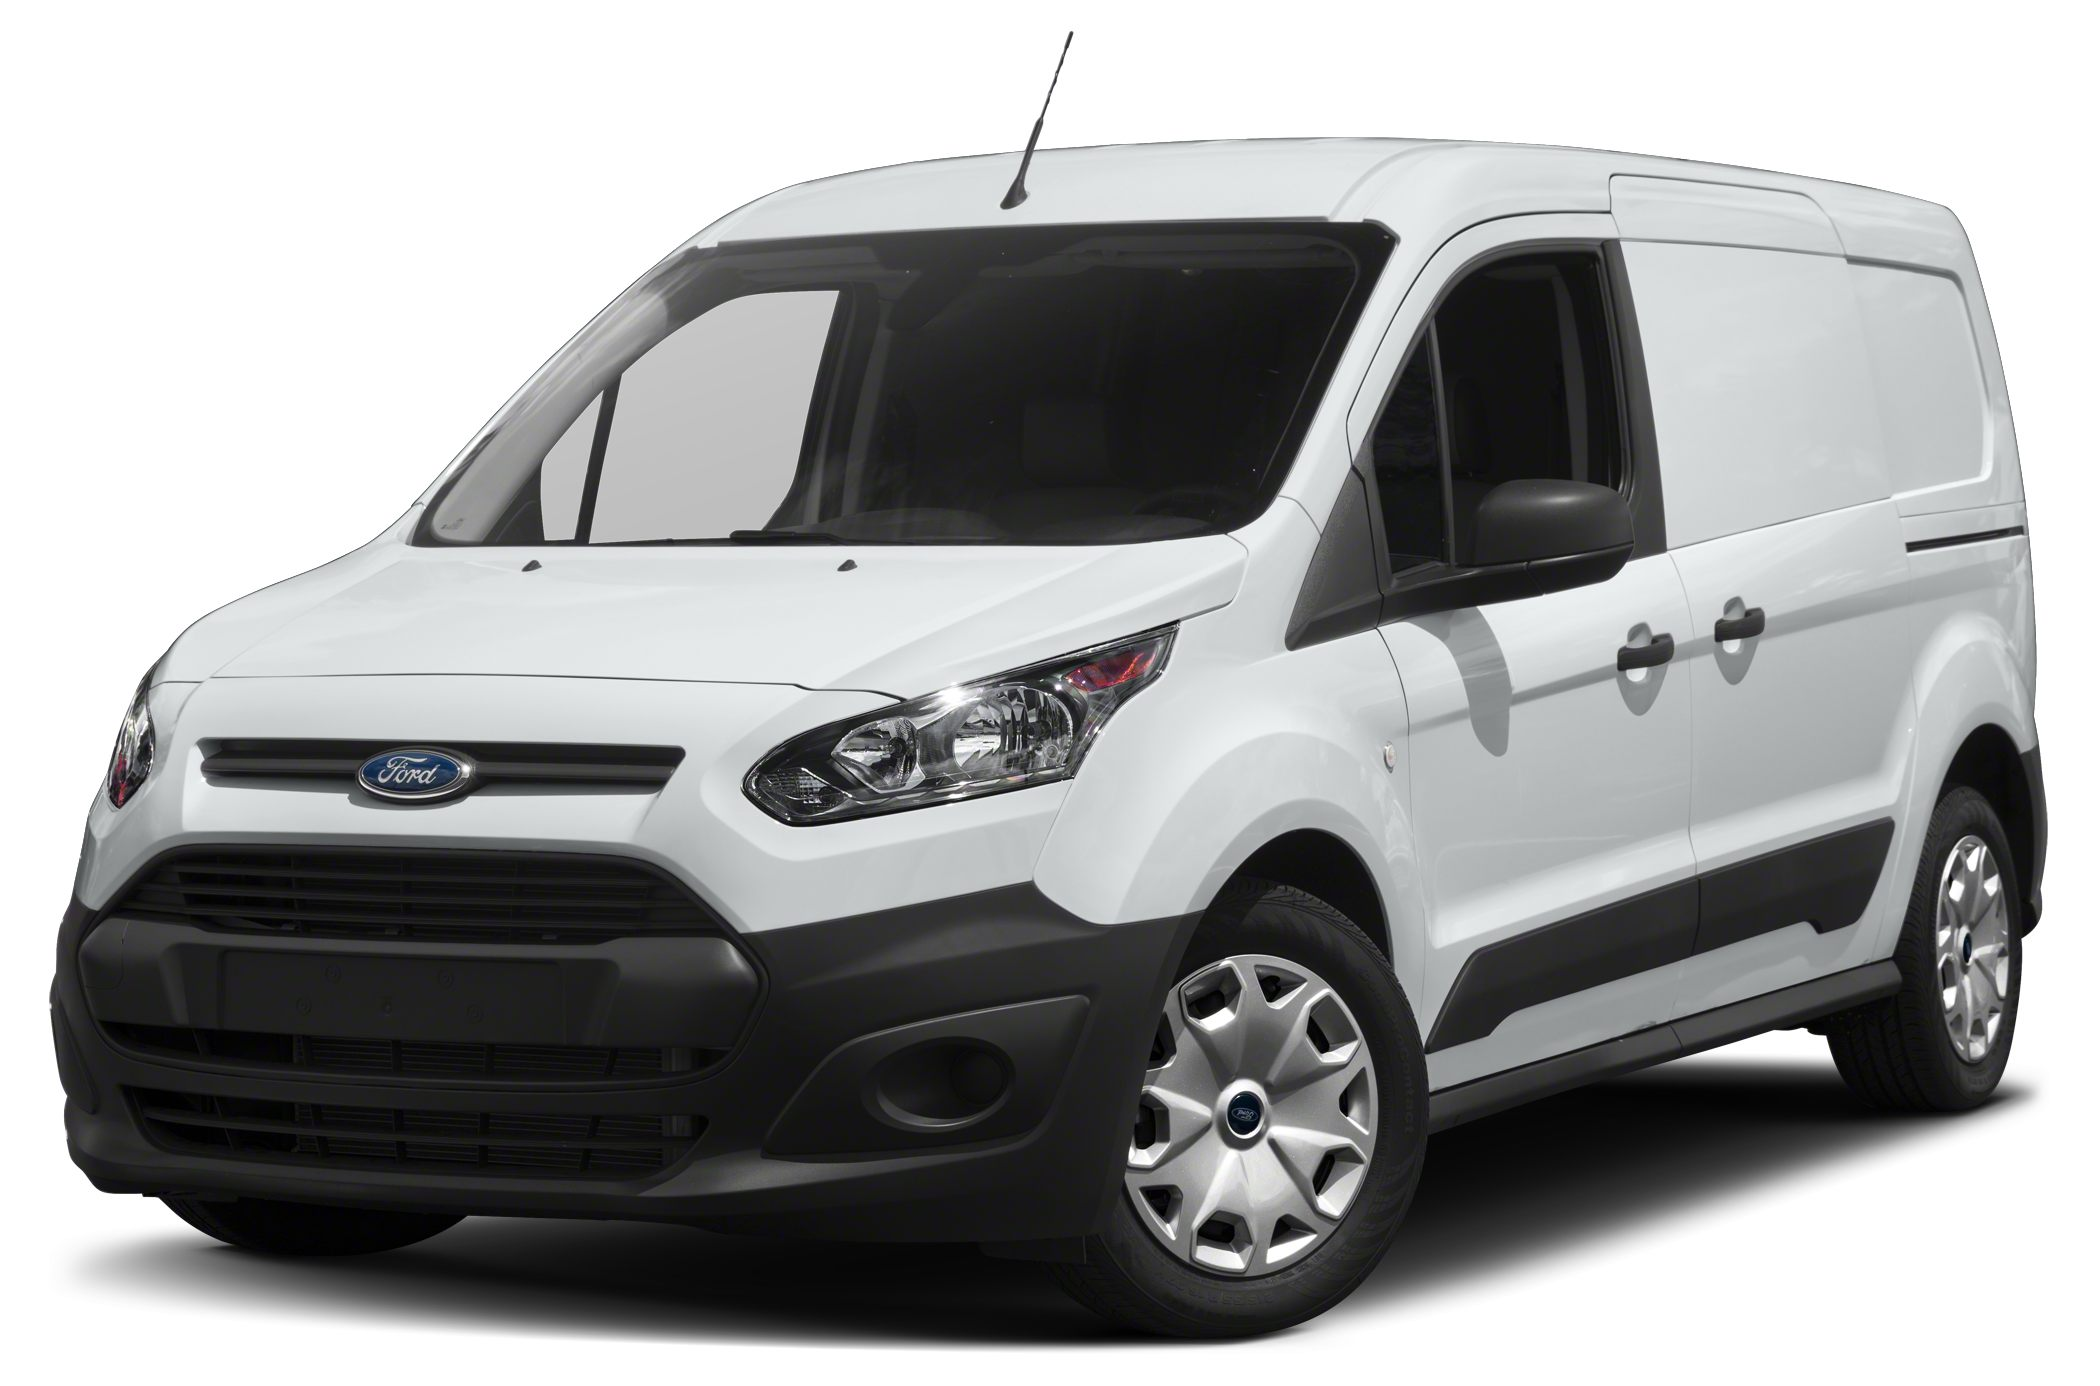 2017 ford transit connect xlt cars and vehicles. Black Bedroom Furniture Sets. Home Design Ideas